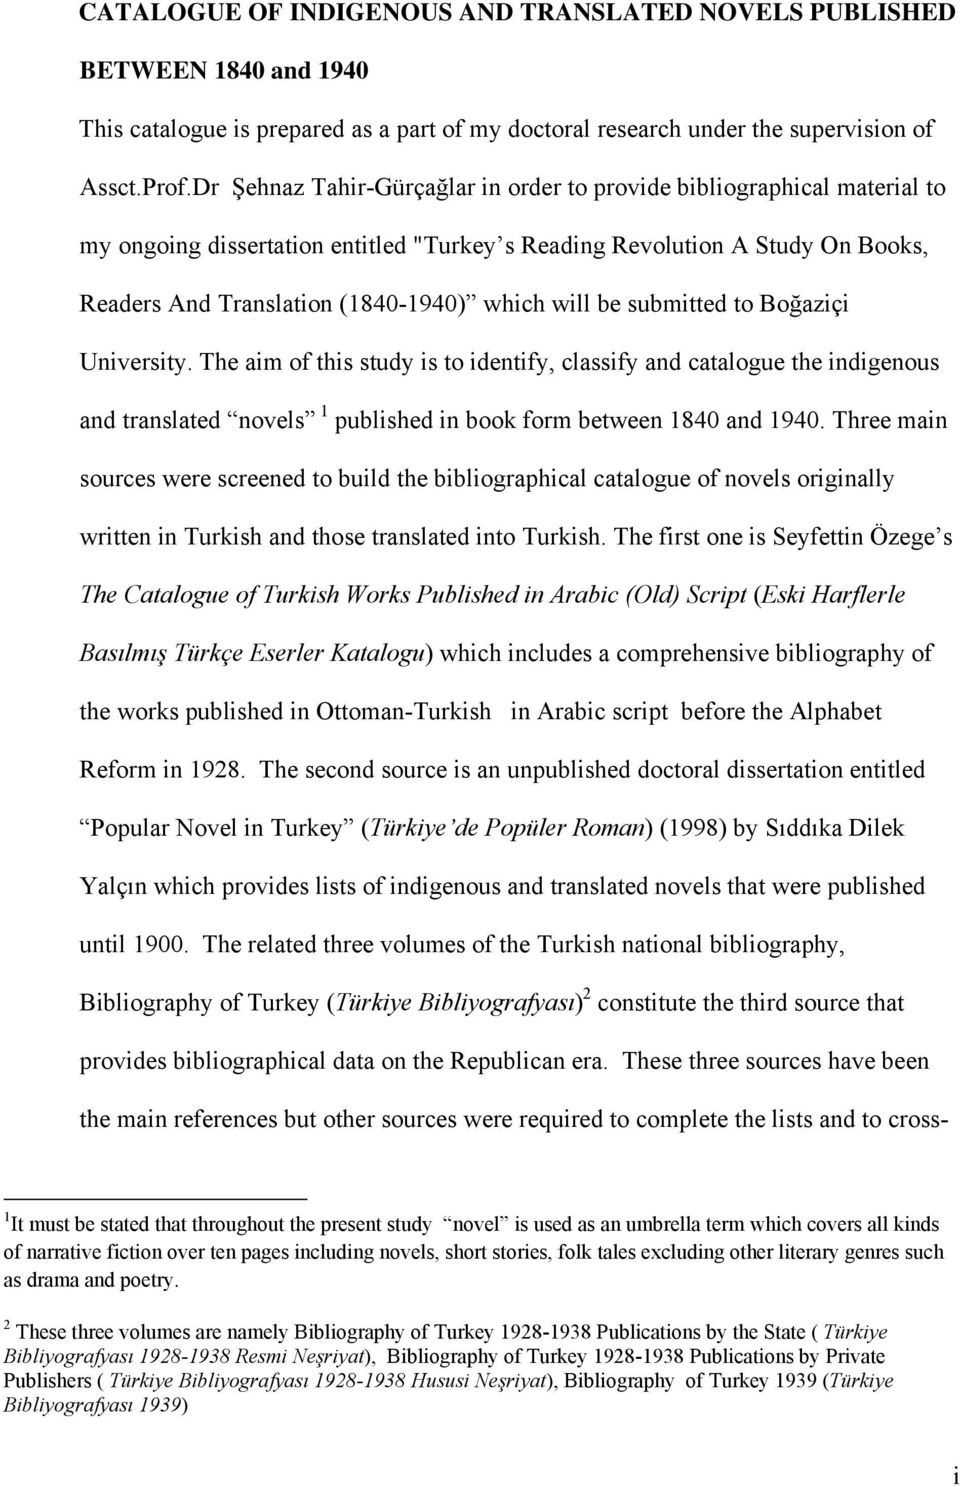 will be submitted to Boğaziçi University. The aim of this study is to identify, classify and catalogue the indigenous and translated novels 1 published in book form between 1840 and 1940.